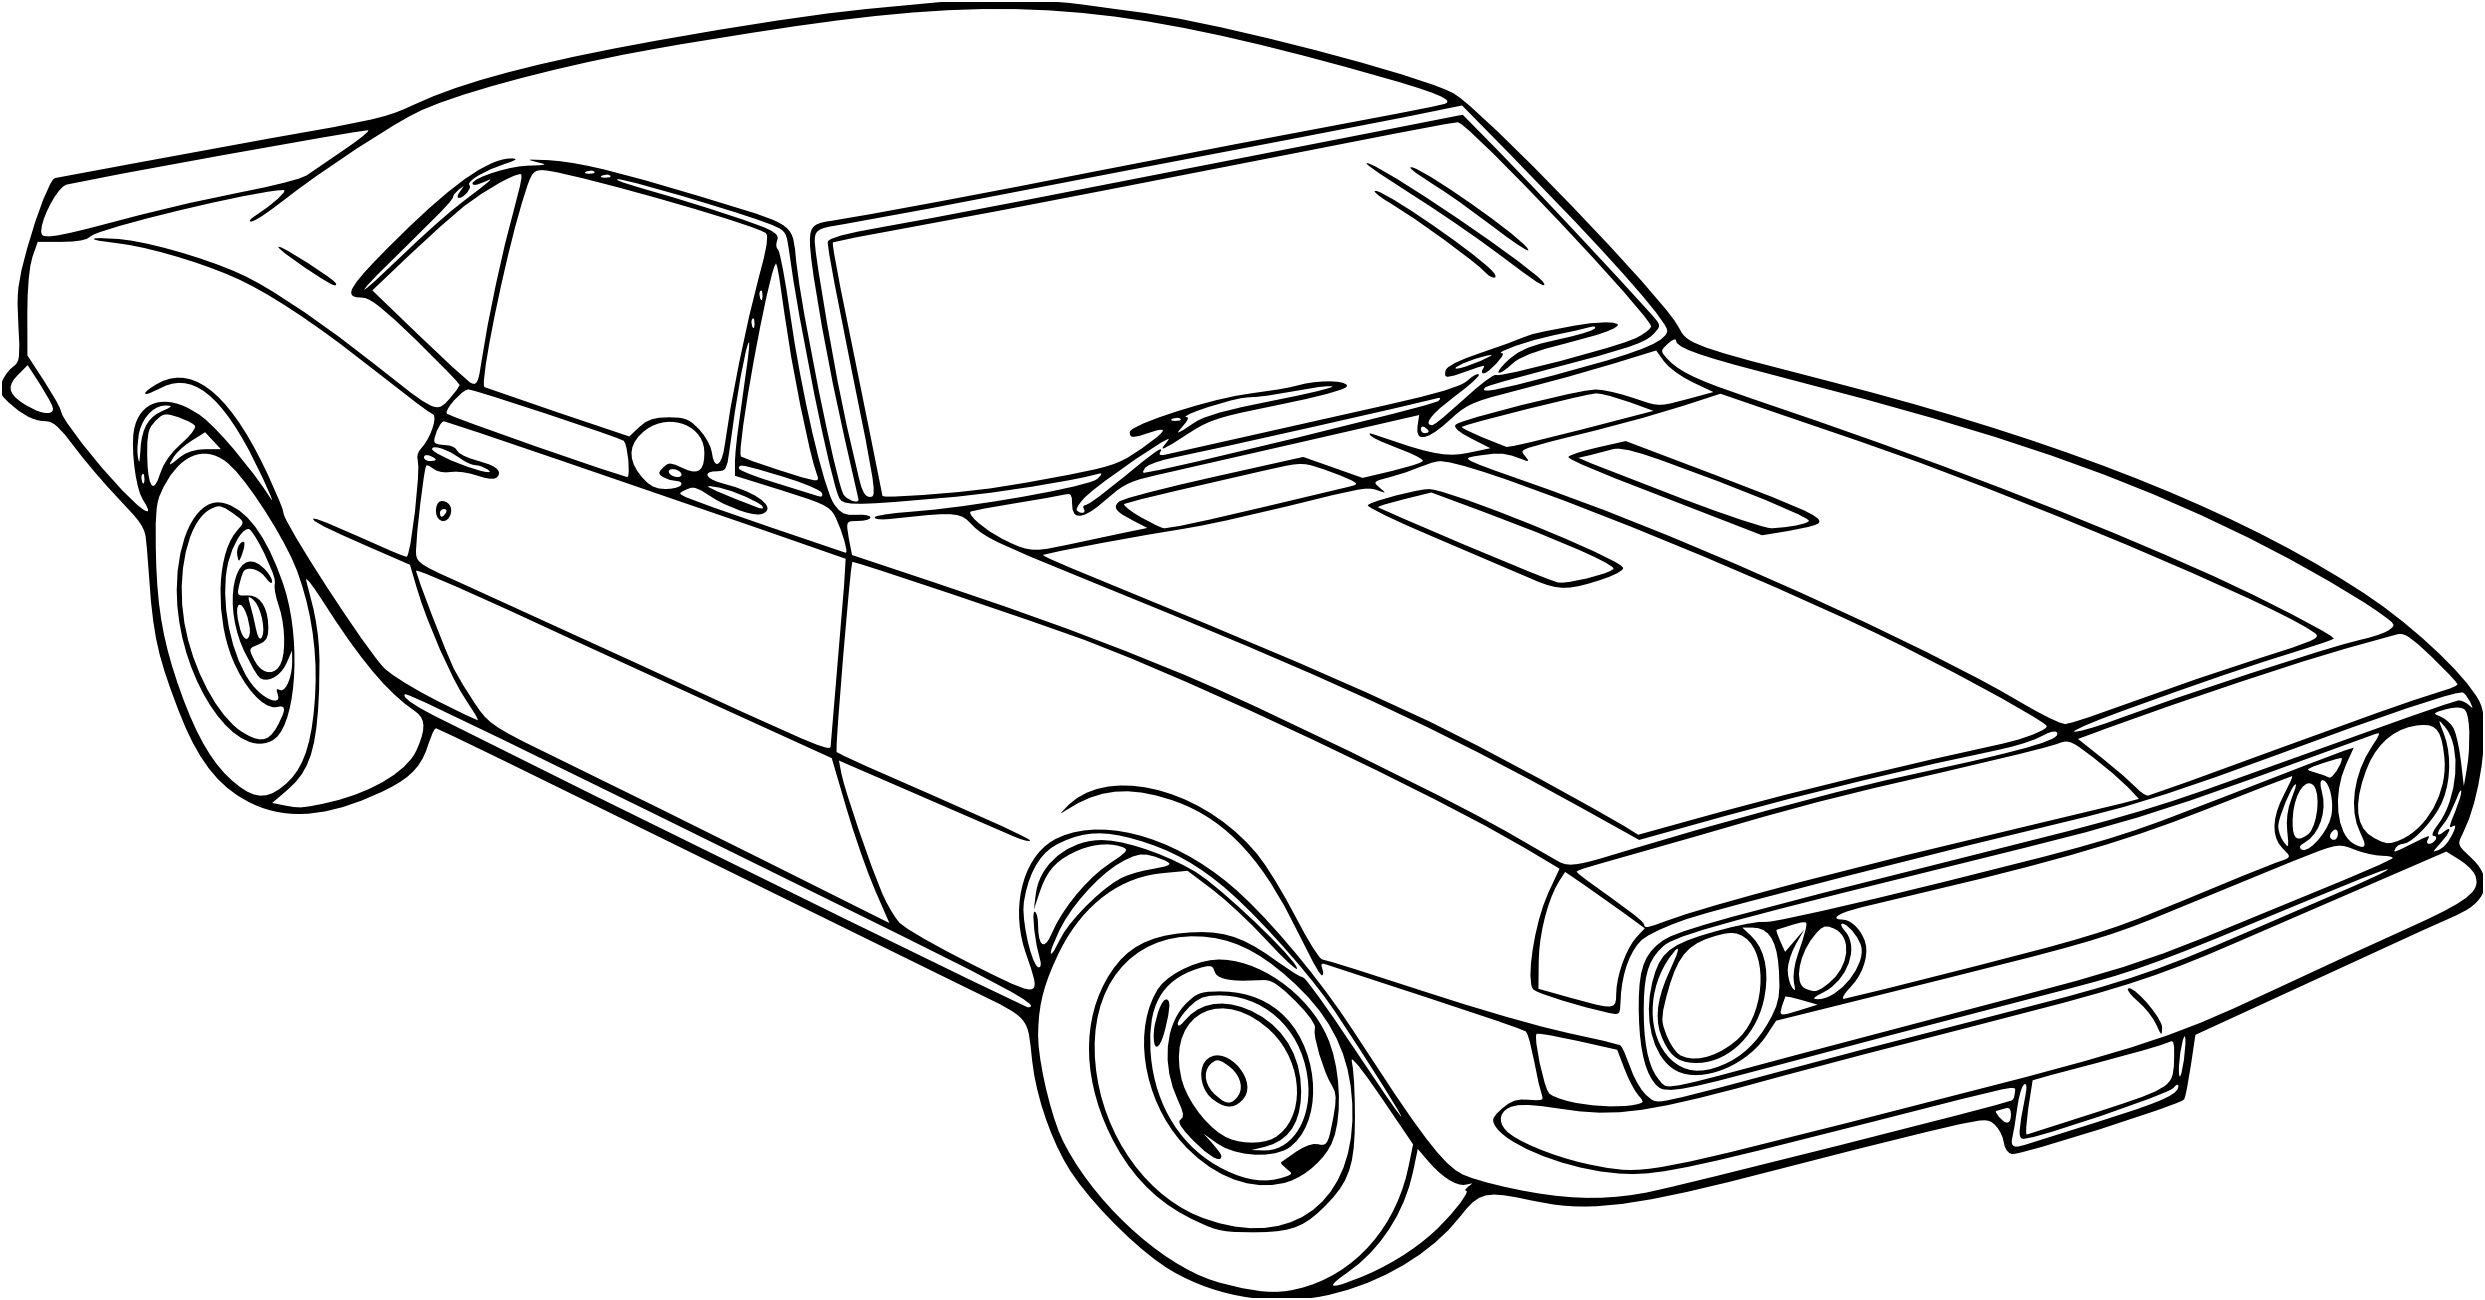 coloriage voiture chevrolet in 2020